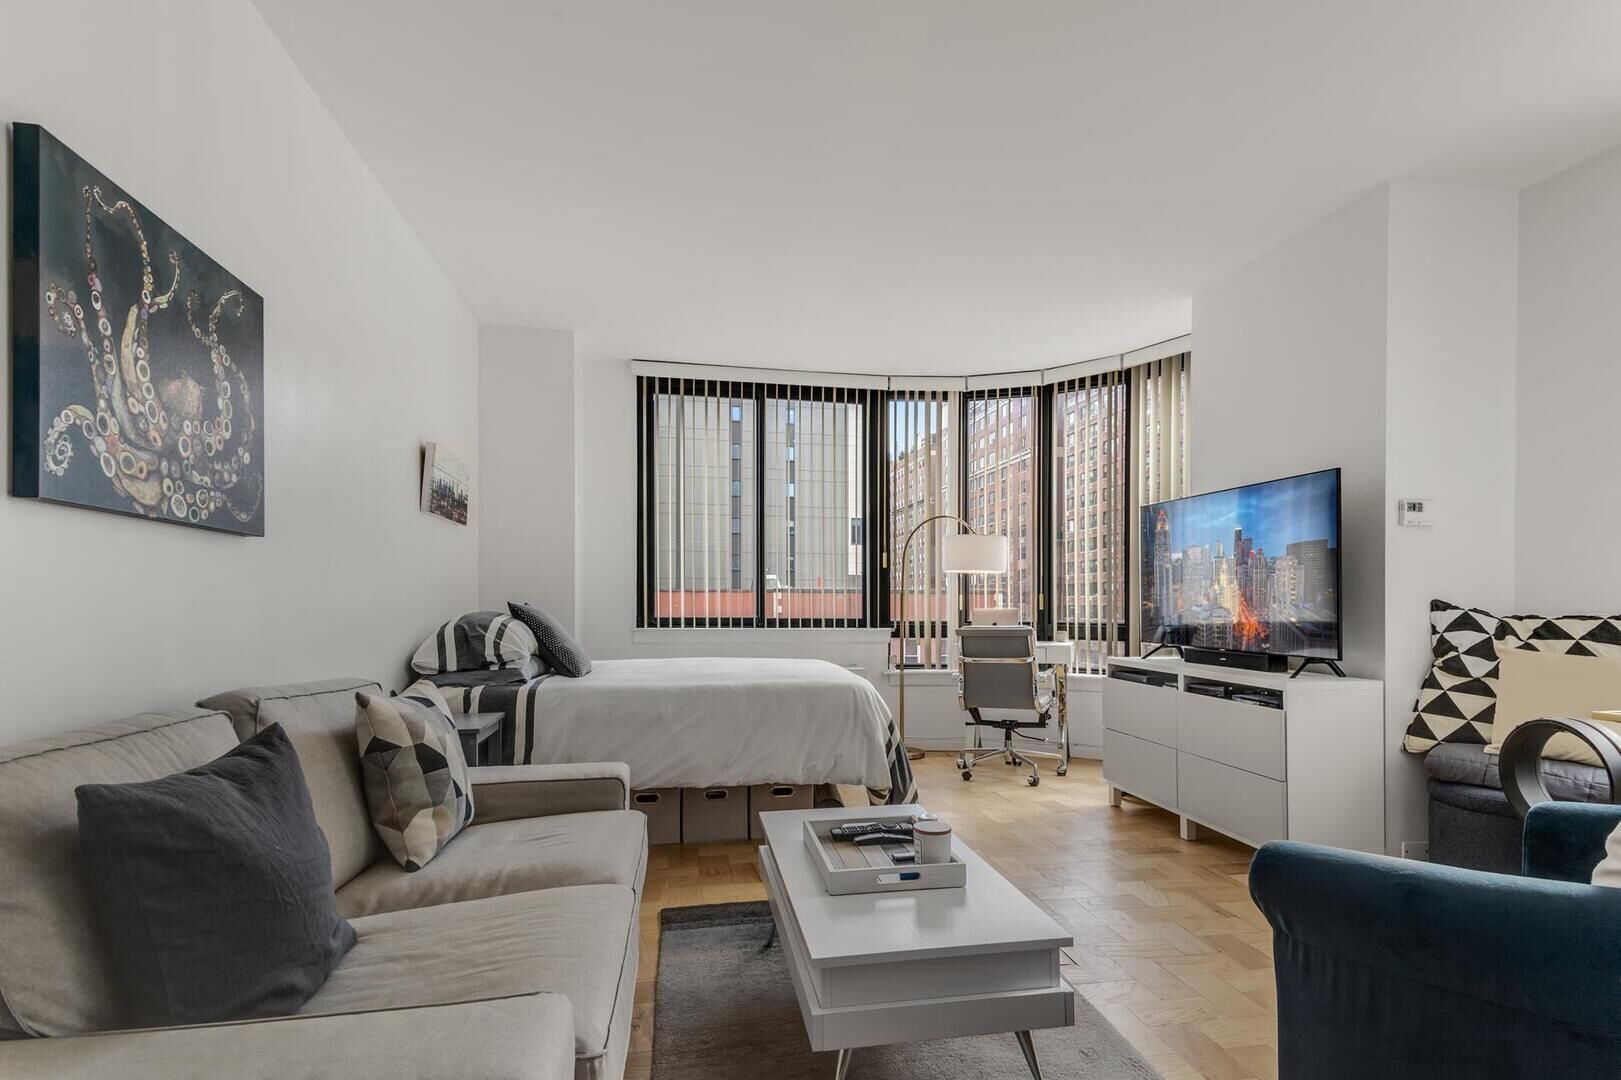 Apartment for sale at 455 East 86th Street, Apt 5-E